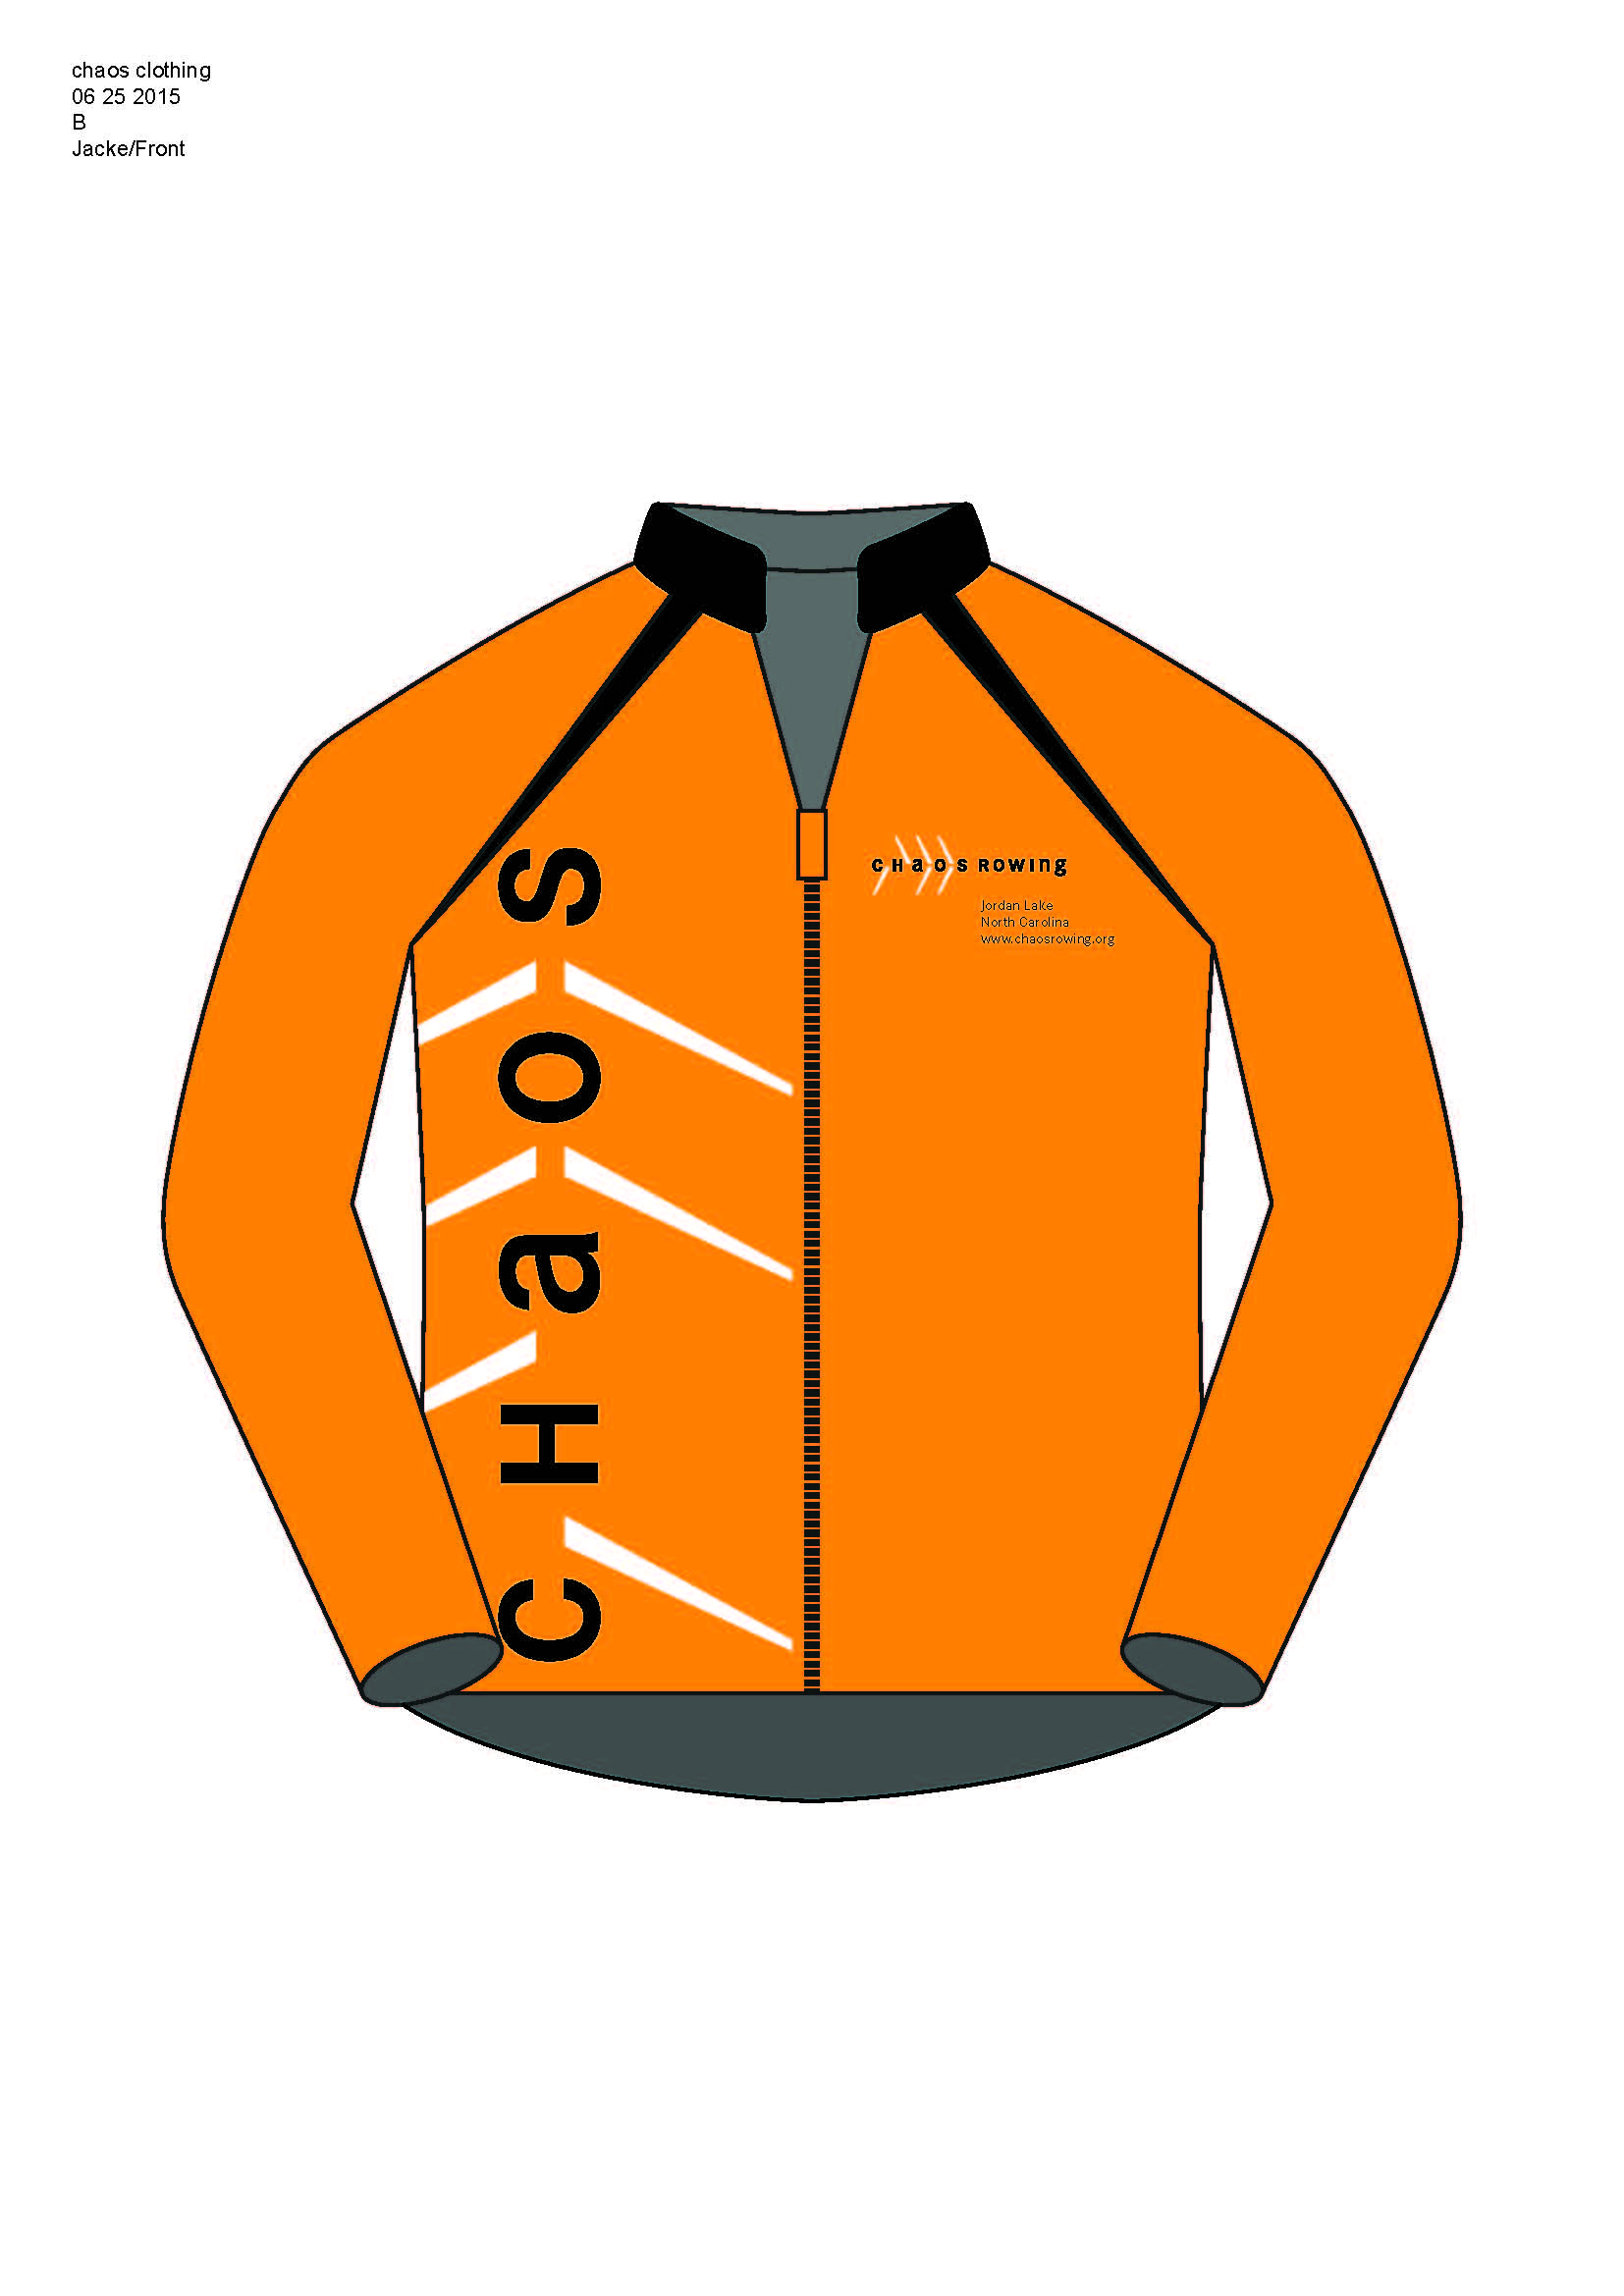 The front view of the jacket